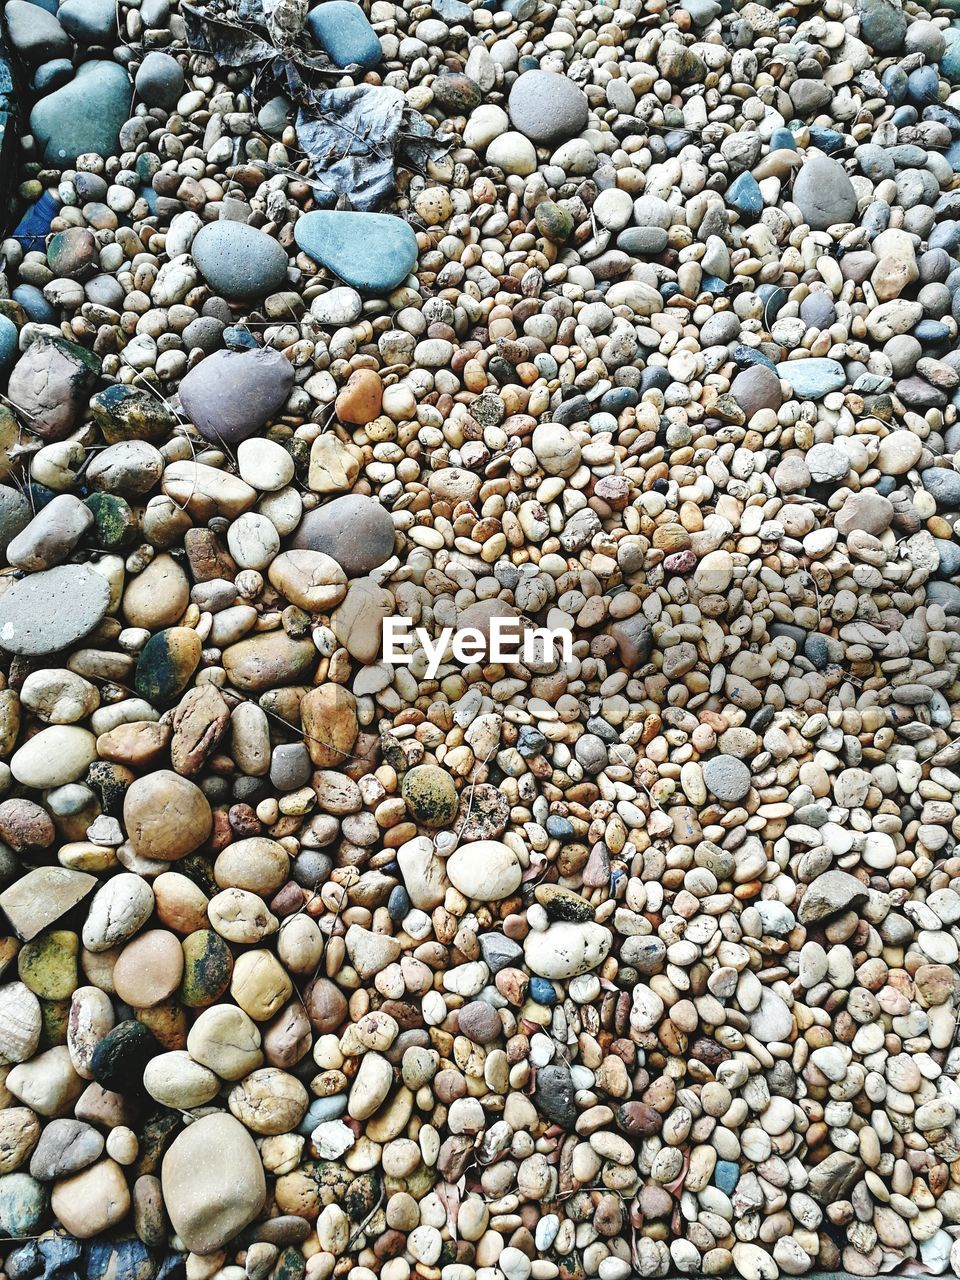 pebble, beach, stone - object, pebble beach, shore, backgrounds, full frame, abundance, large group of objects, nature, outdoors, no people, day, beauty in nature, close-up